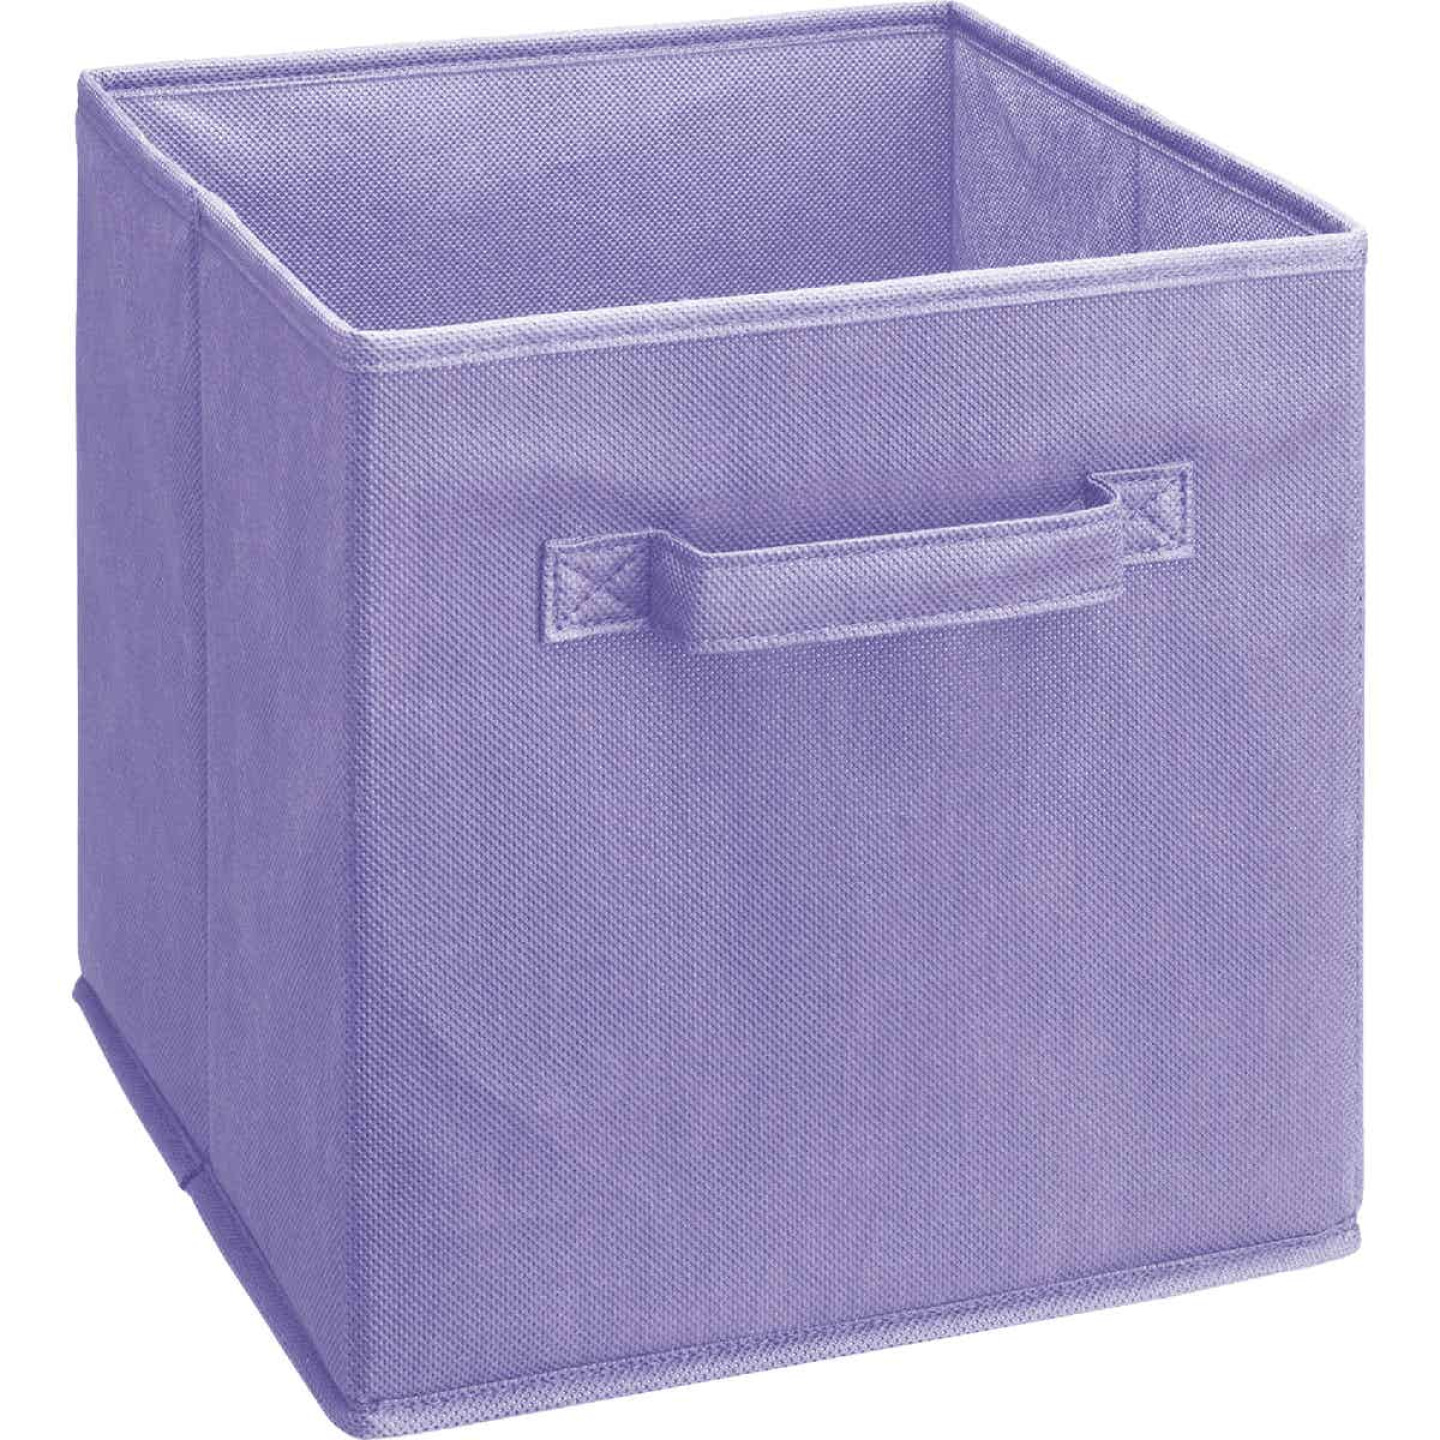 ClosetMaid Cubeicals 10.5 In. W. x 11 In. H. Purple Fabric Drawer Image 1